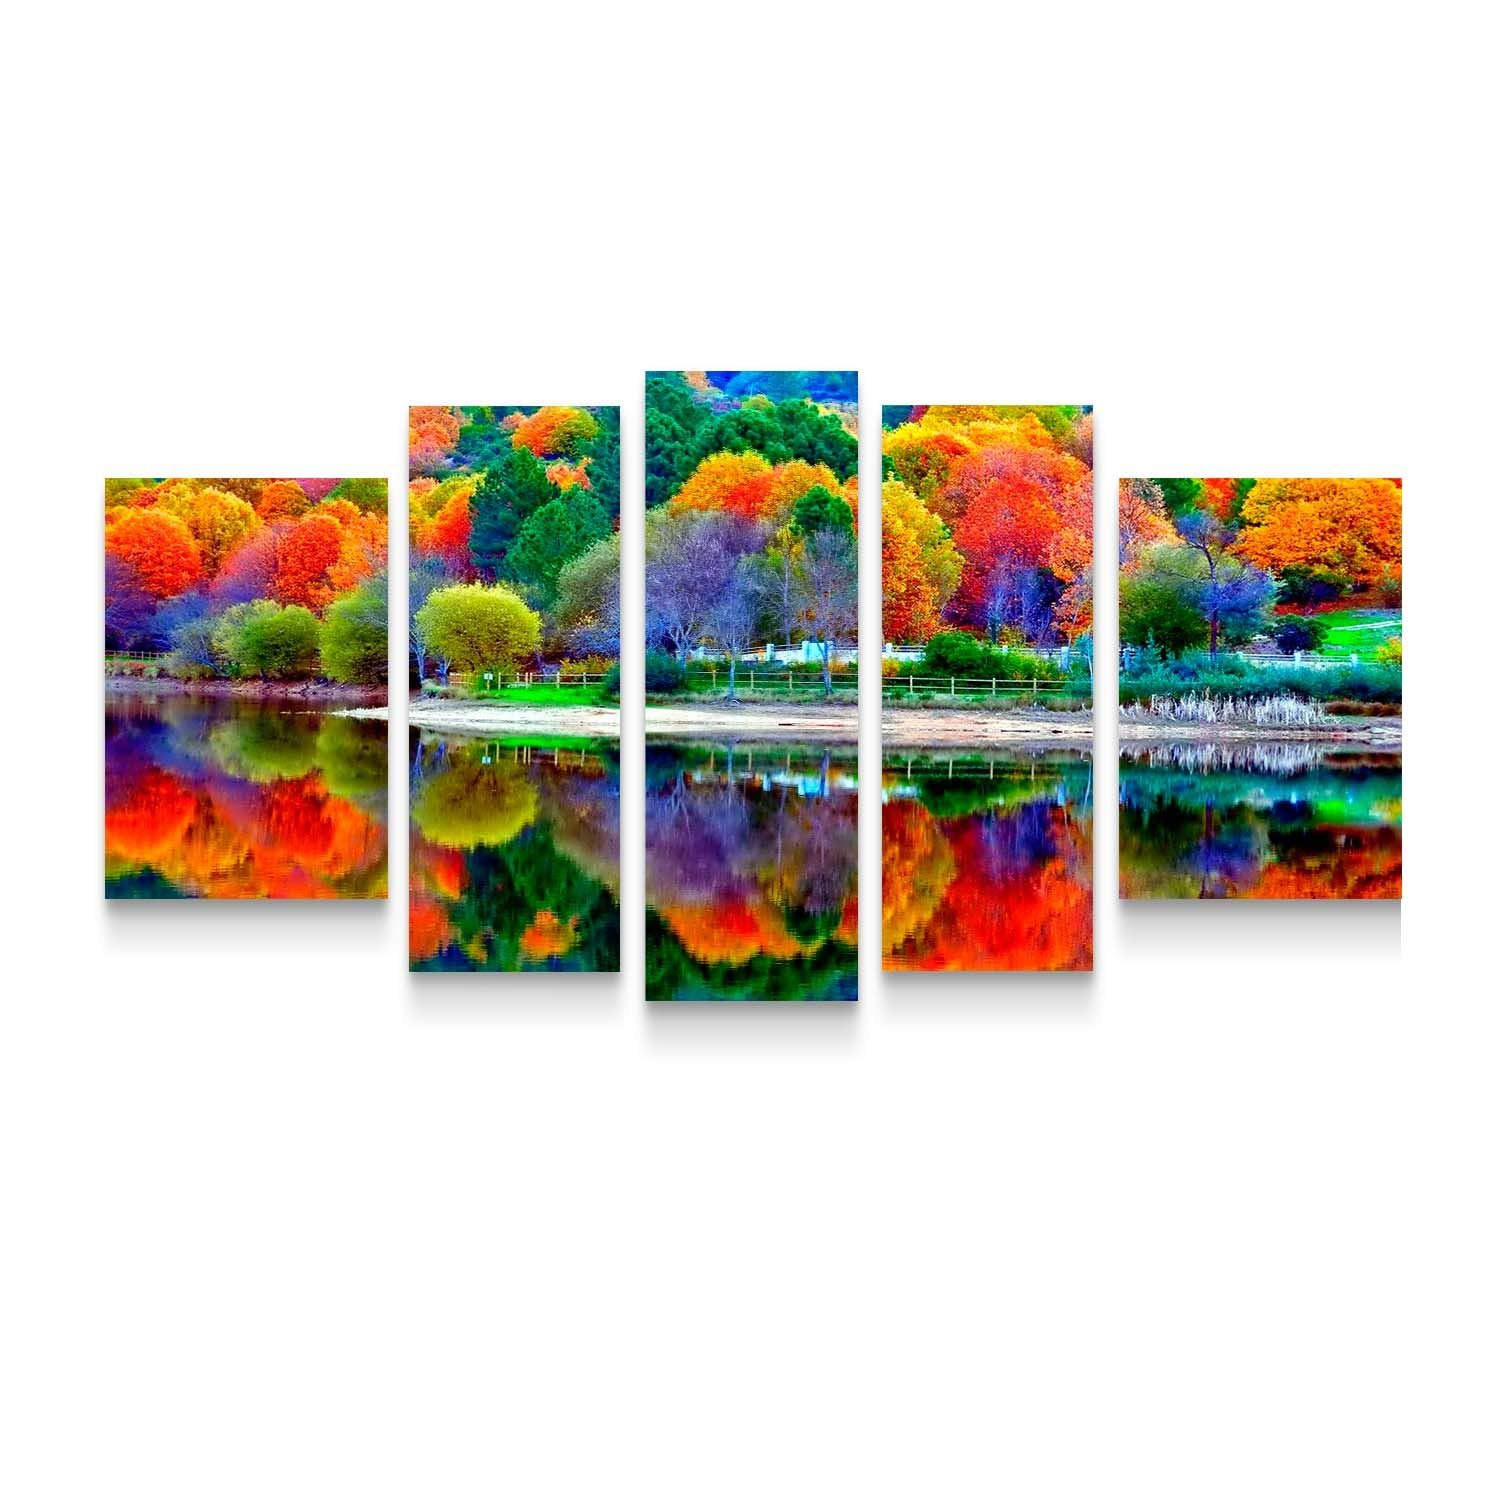 Startonight Canvas Wall Art All Forest Colors in Water Reflection - Flowers 36 by 71 Inches Set of 5